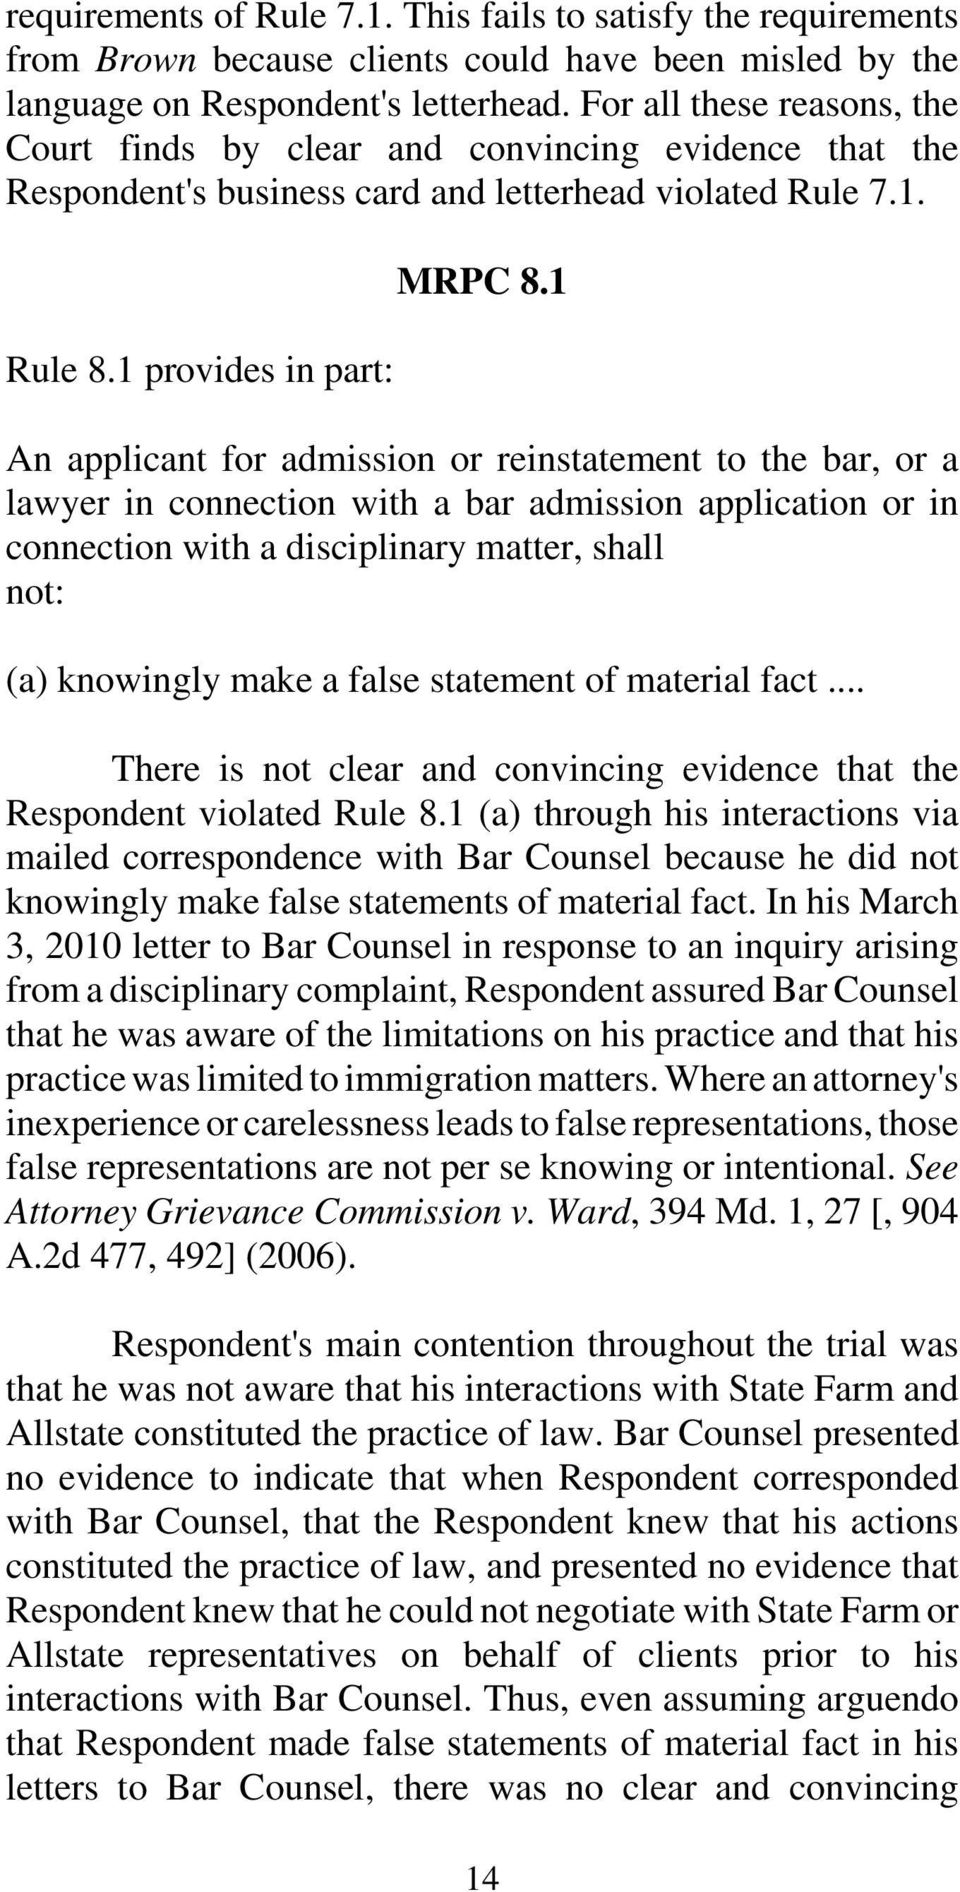 1 An applicant for admission or reinstatement to the bar, or a lawyer in connection with a bar admission application or in connection with a disciplinary matter, shall not: (a) knowingly make a false